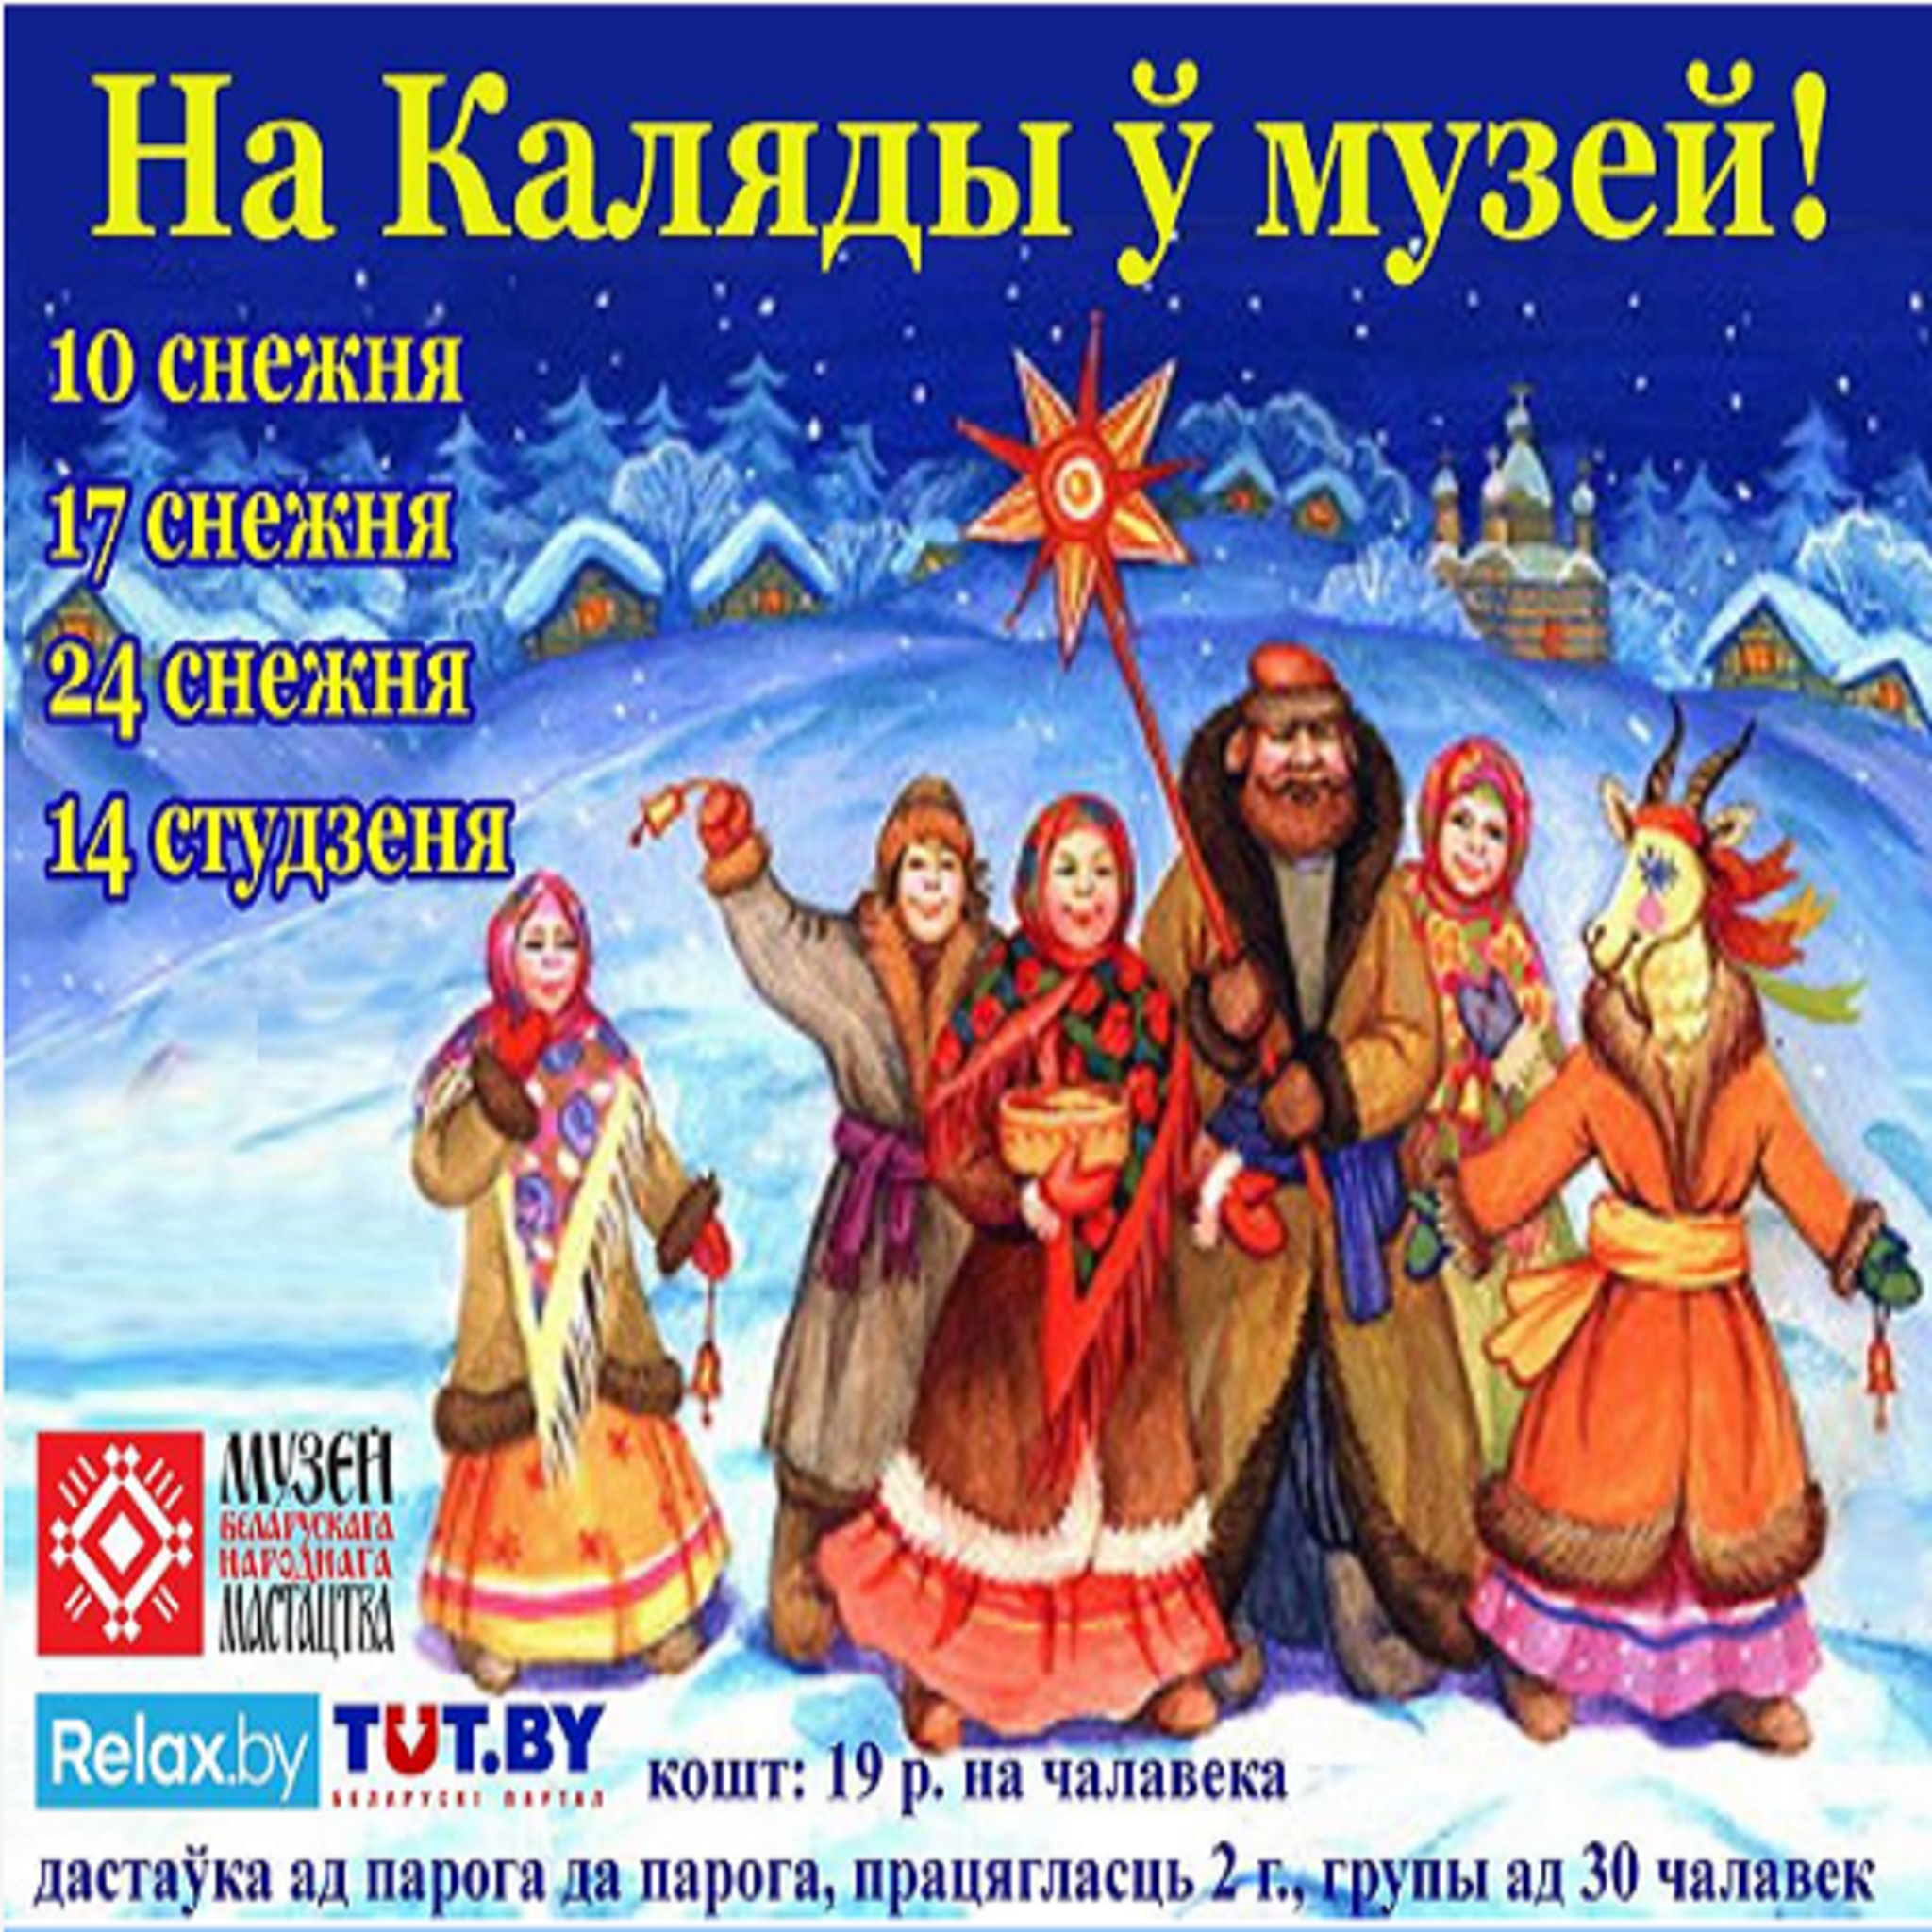 Children's New Year's program On Christmas Day in a museum!